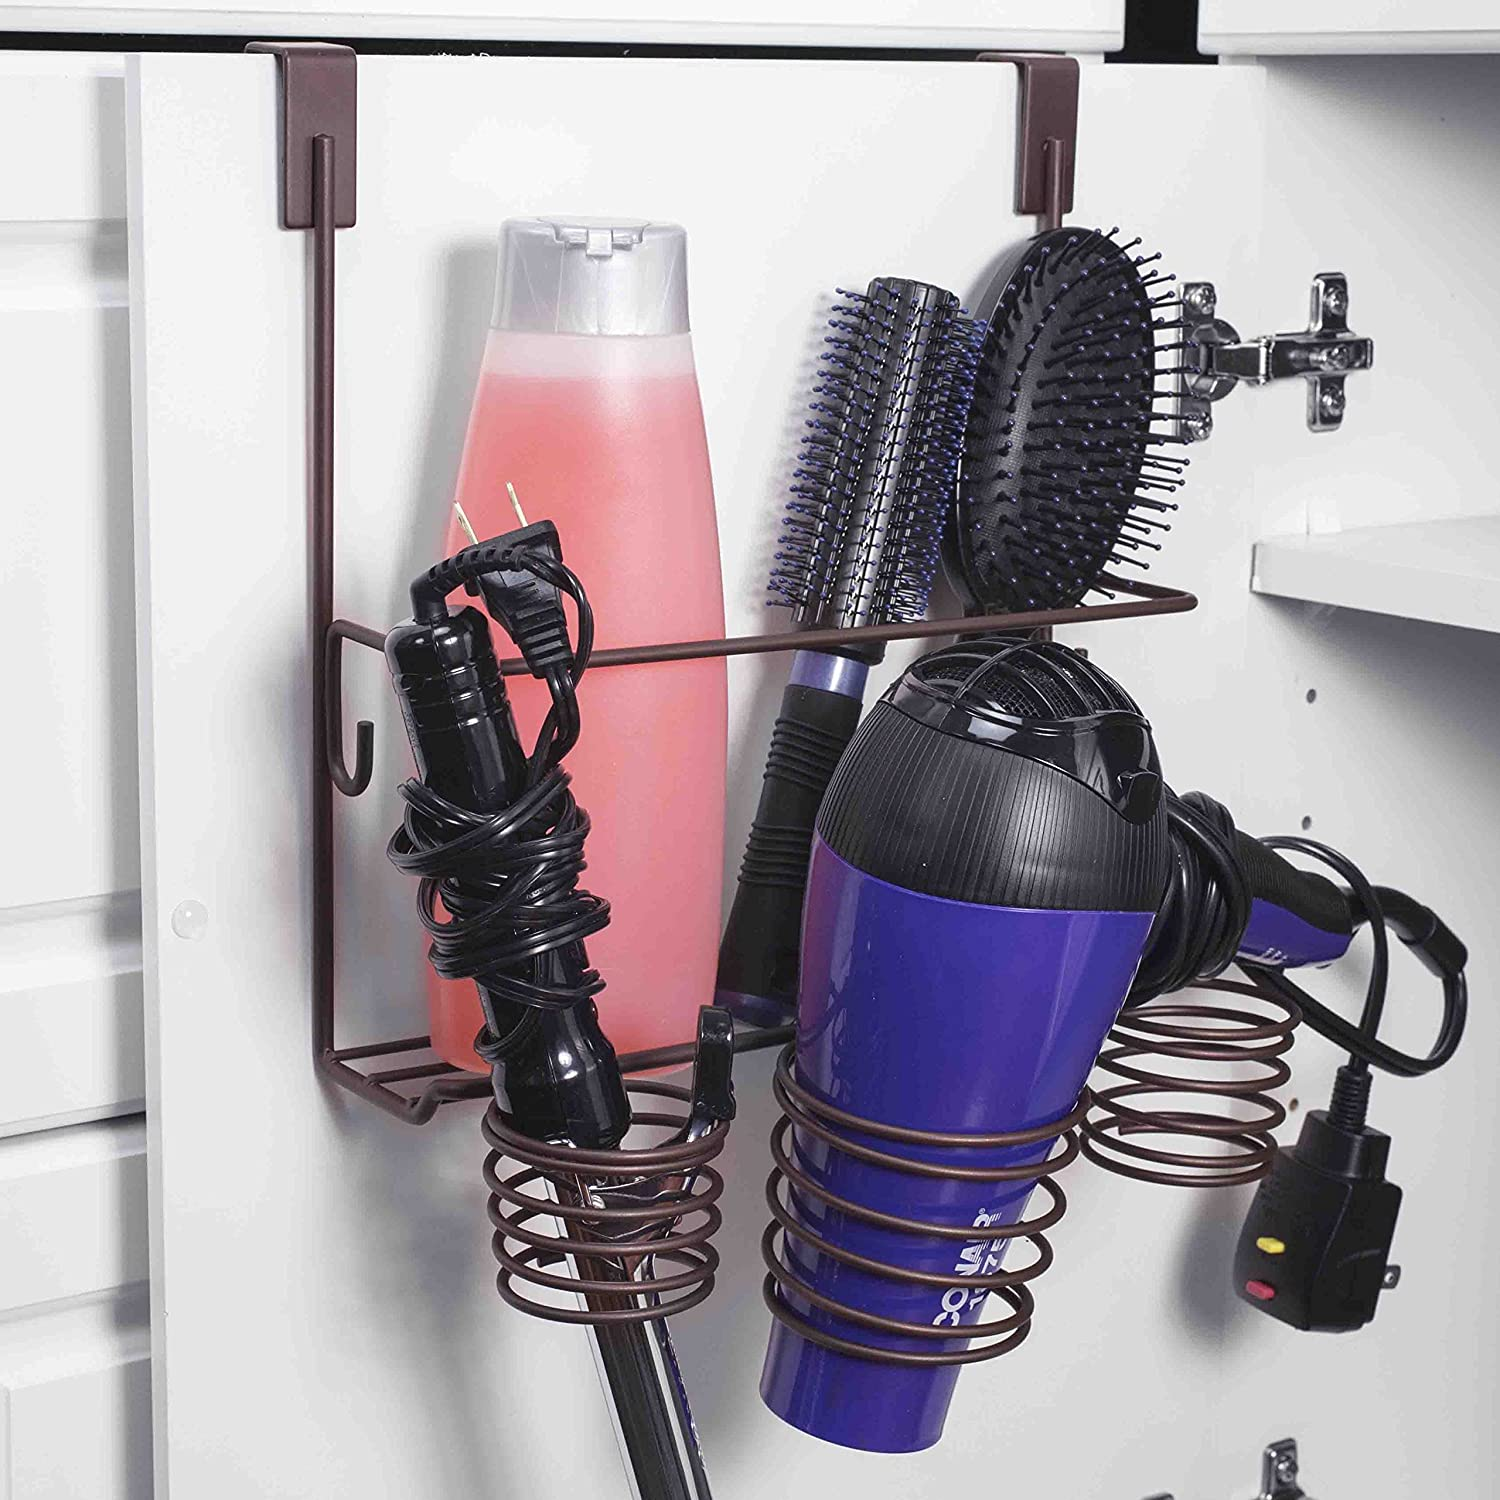 Home Basics Metal Over Door Hair Care & Styling Tool Storage Organizer Basket for Hair Dryer, Flat Iron, Curling Wand, Hair Straightener, Brush - Hang Inside or Outside Cabinet Doors (Bronze)